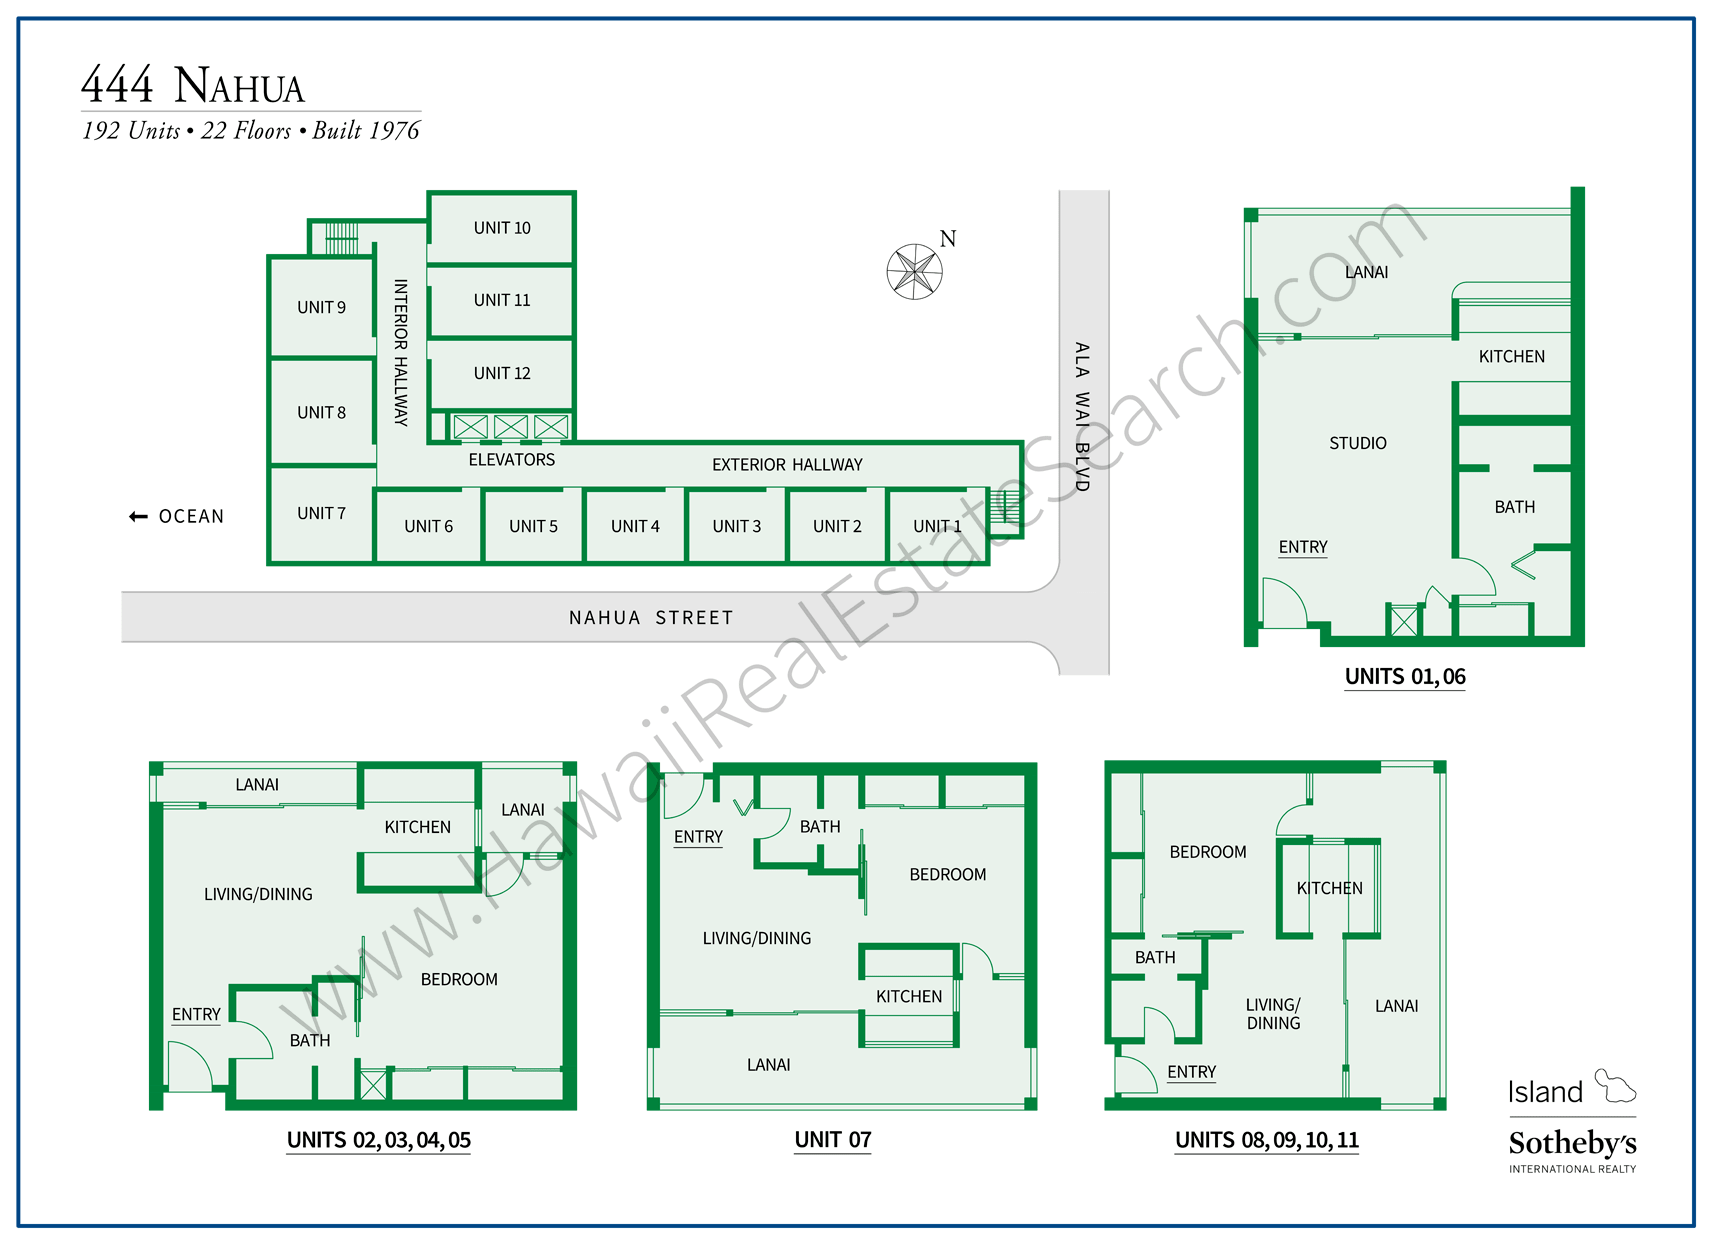 Updated 444 Nahua Map and Floor Plans